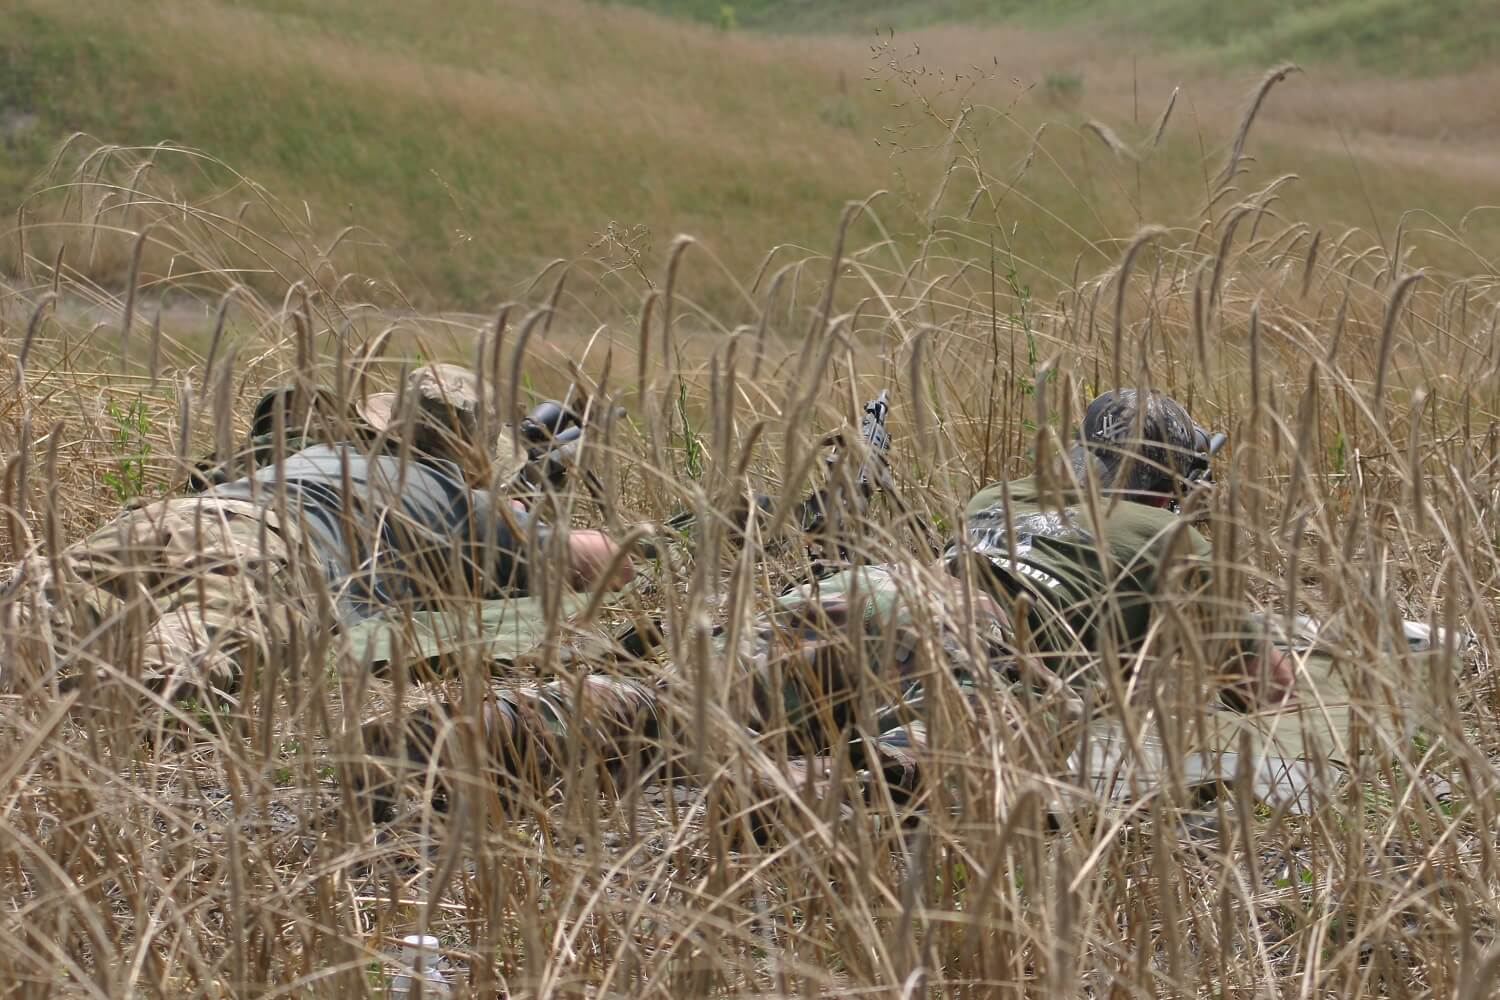 Rifle in the grass